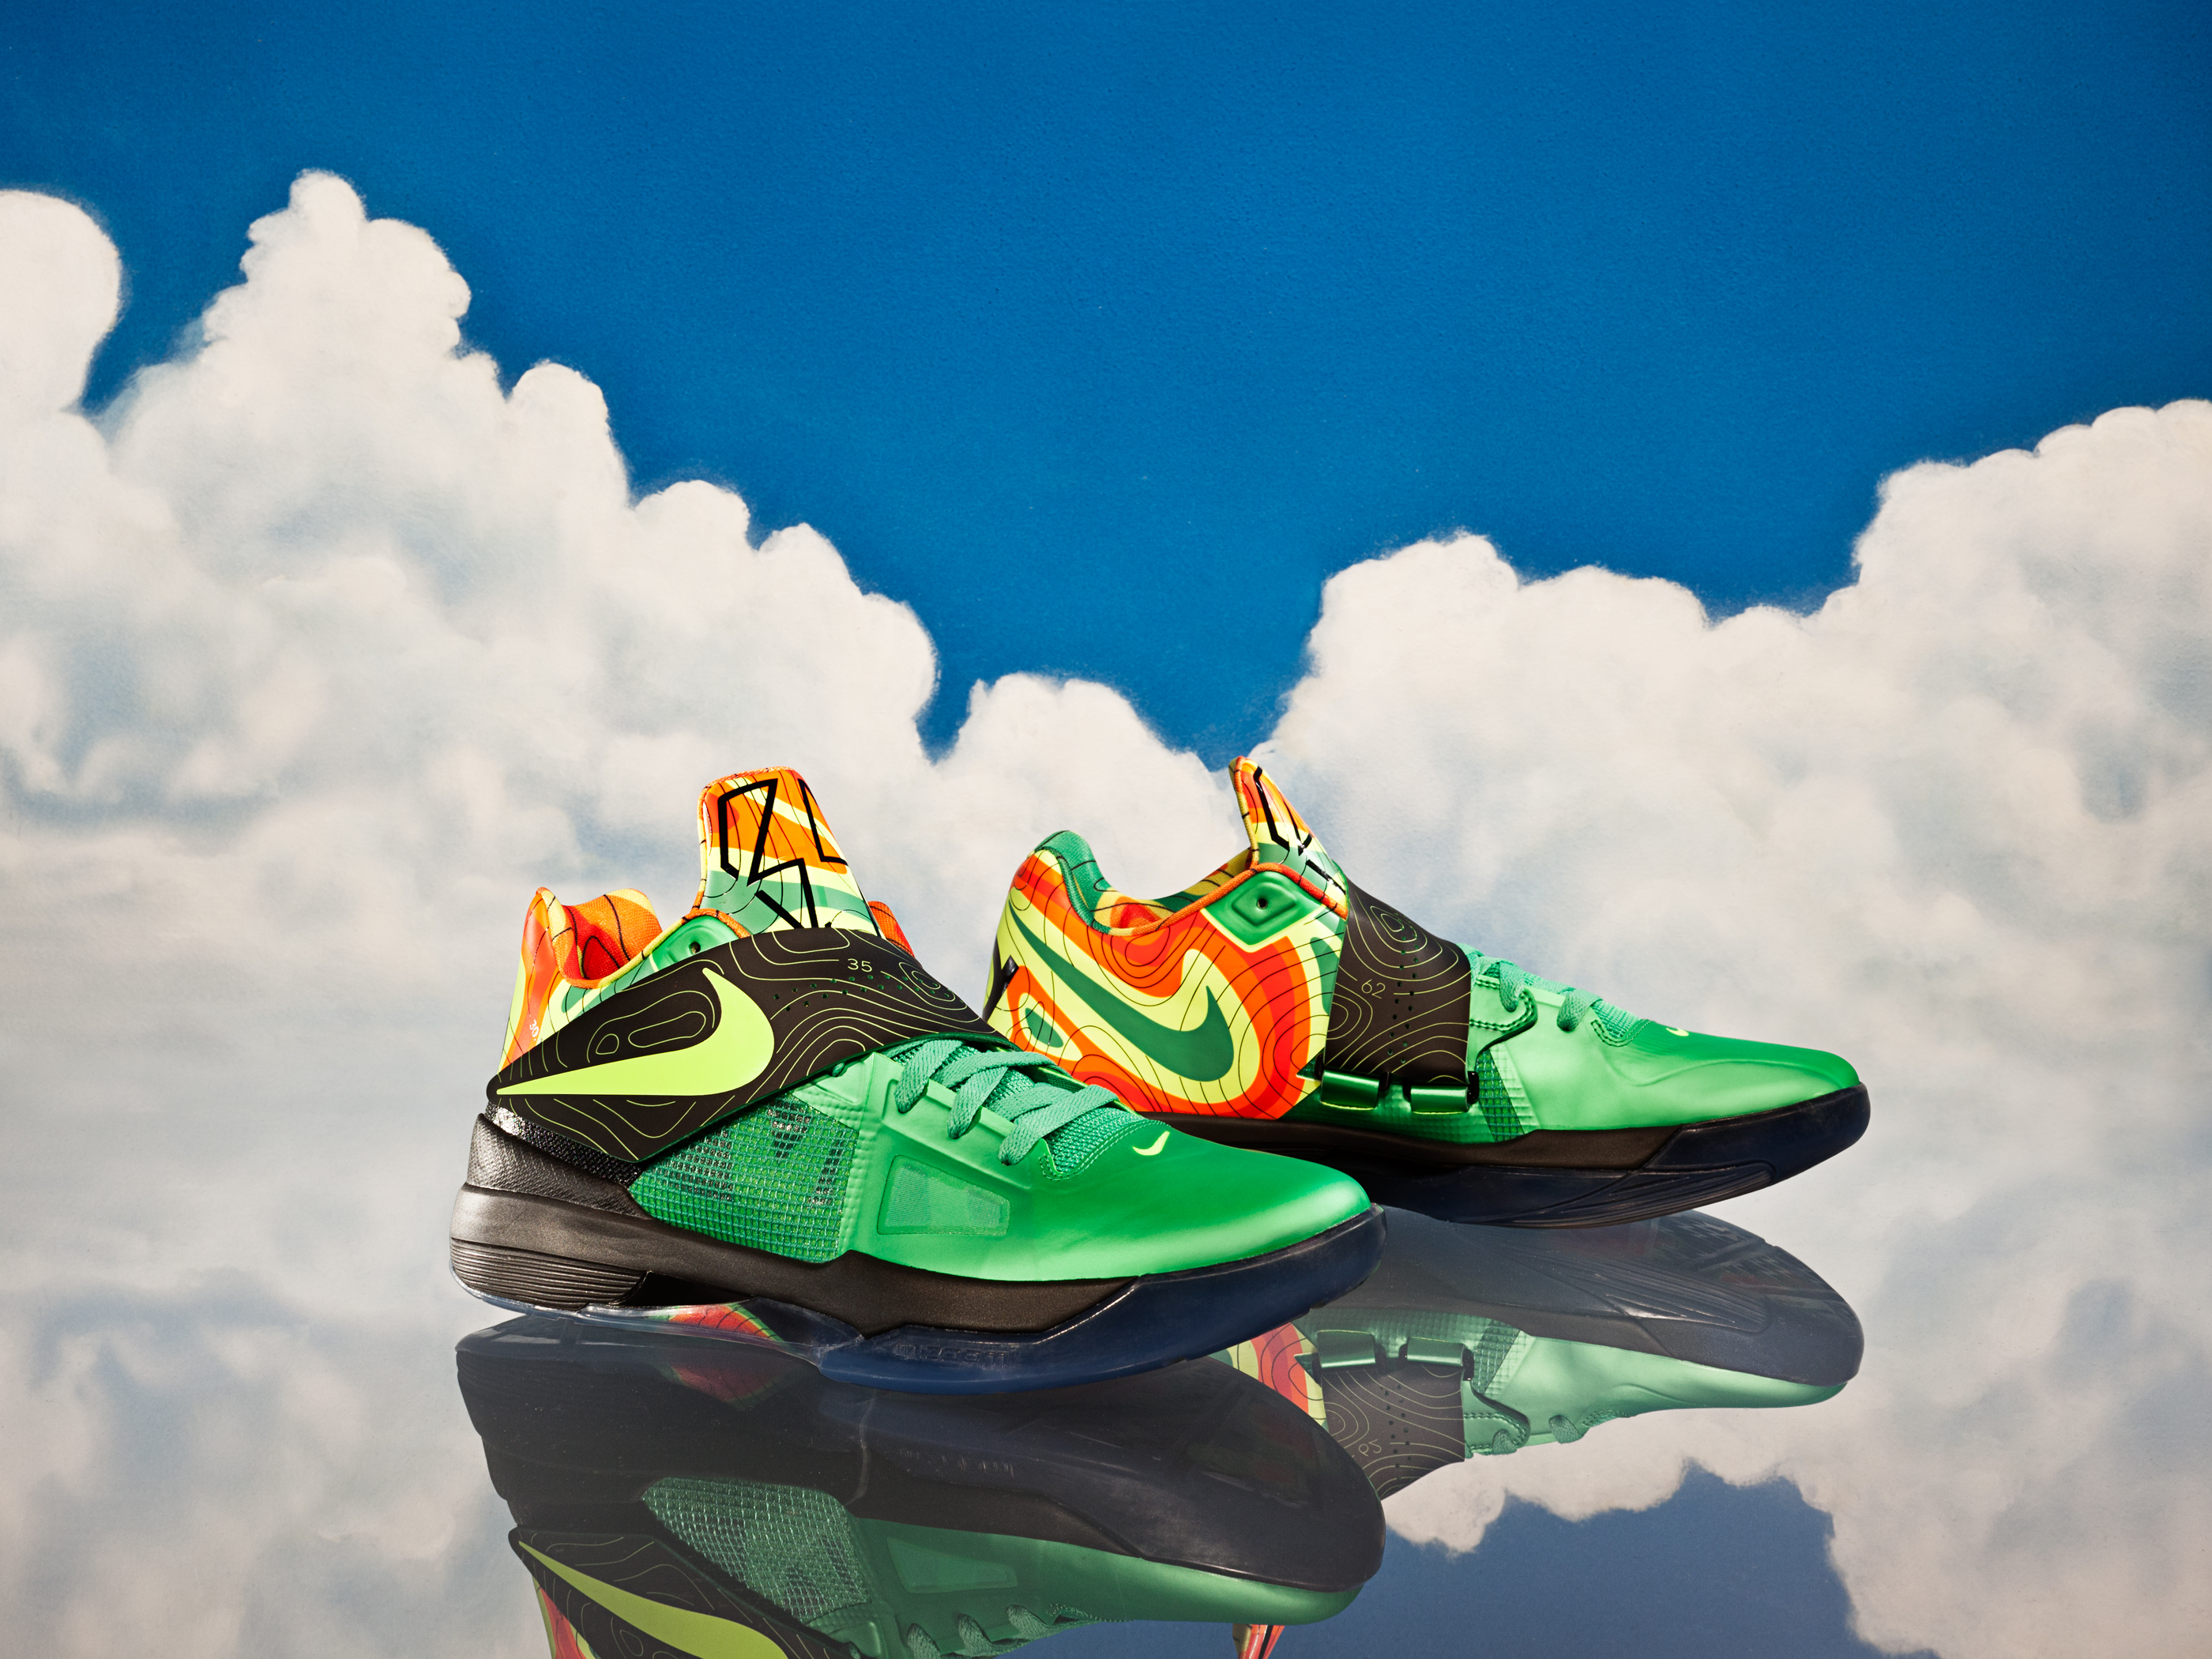 how do kd 4 fit